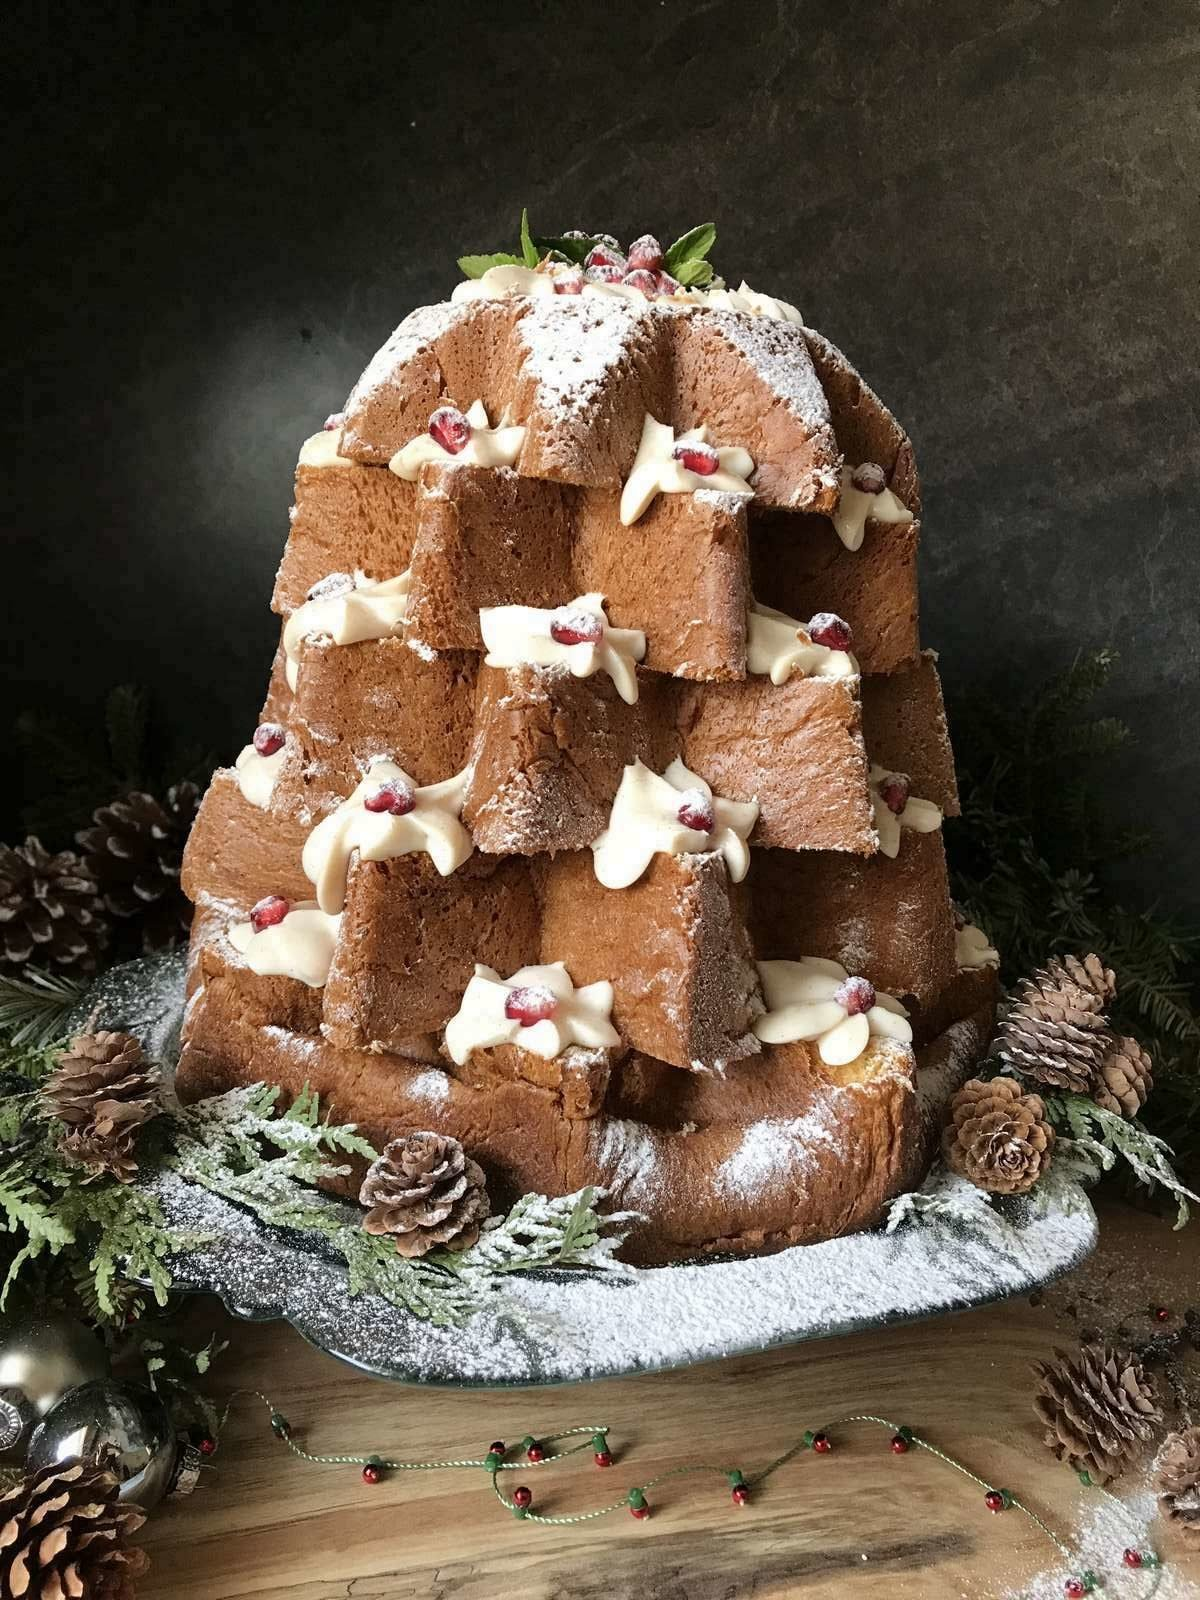 A Pandoro Christmas tree cake garnished with whipped ricotta and icing sugar.